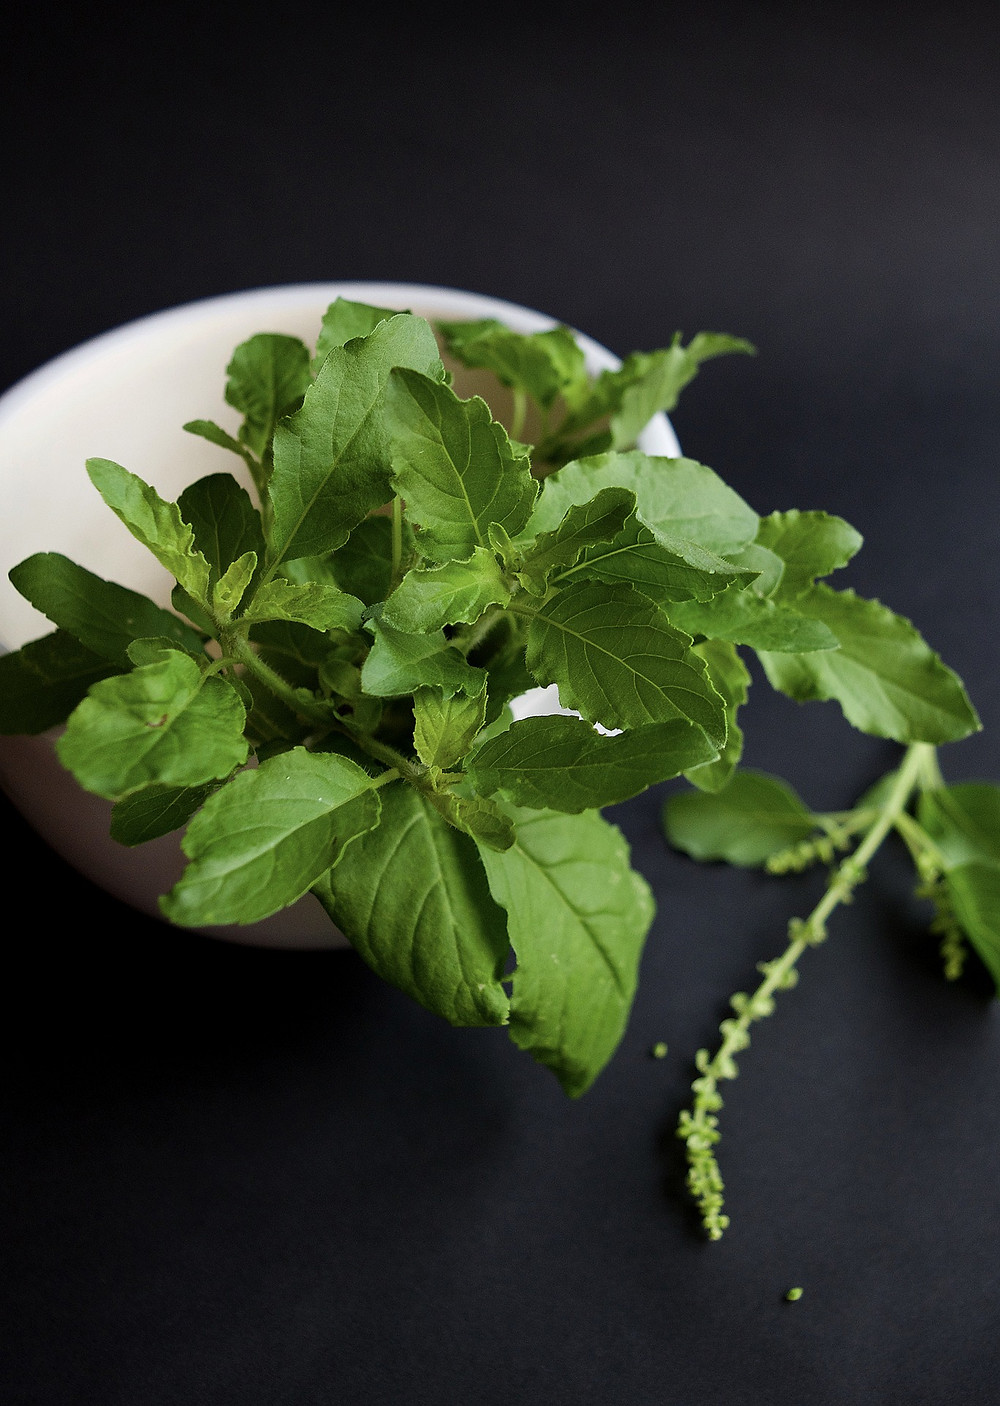 Holy basil, also known as tulsi